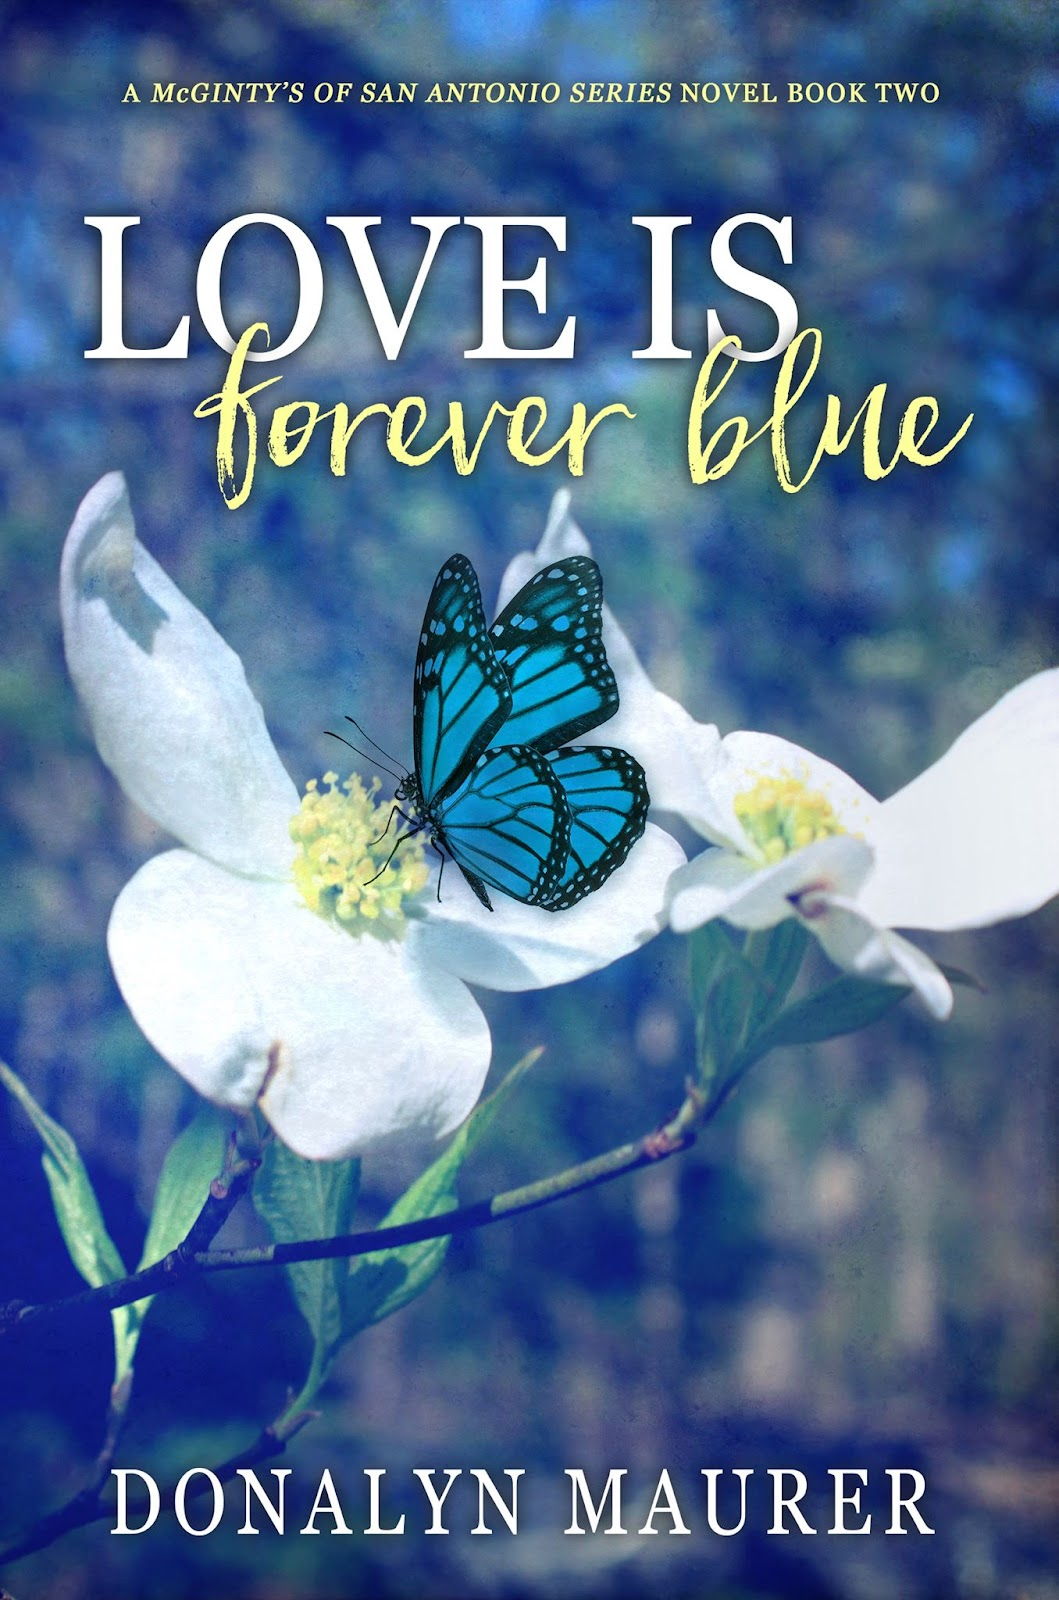 Love Is Forever Blue - Donalyn Maurer.jpg